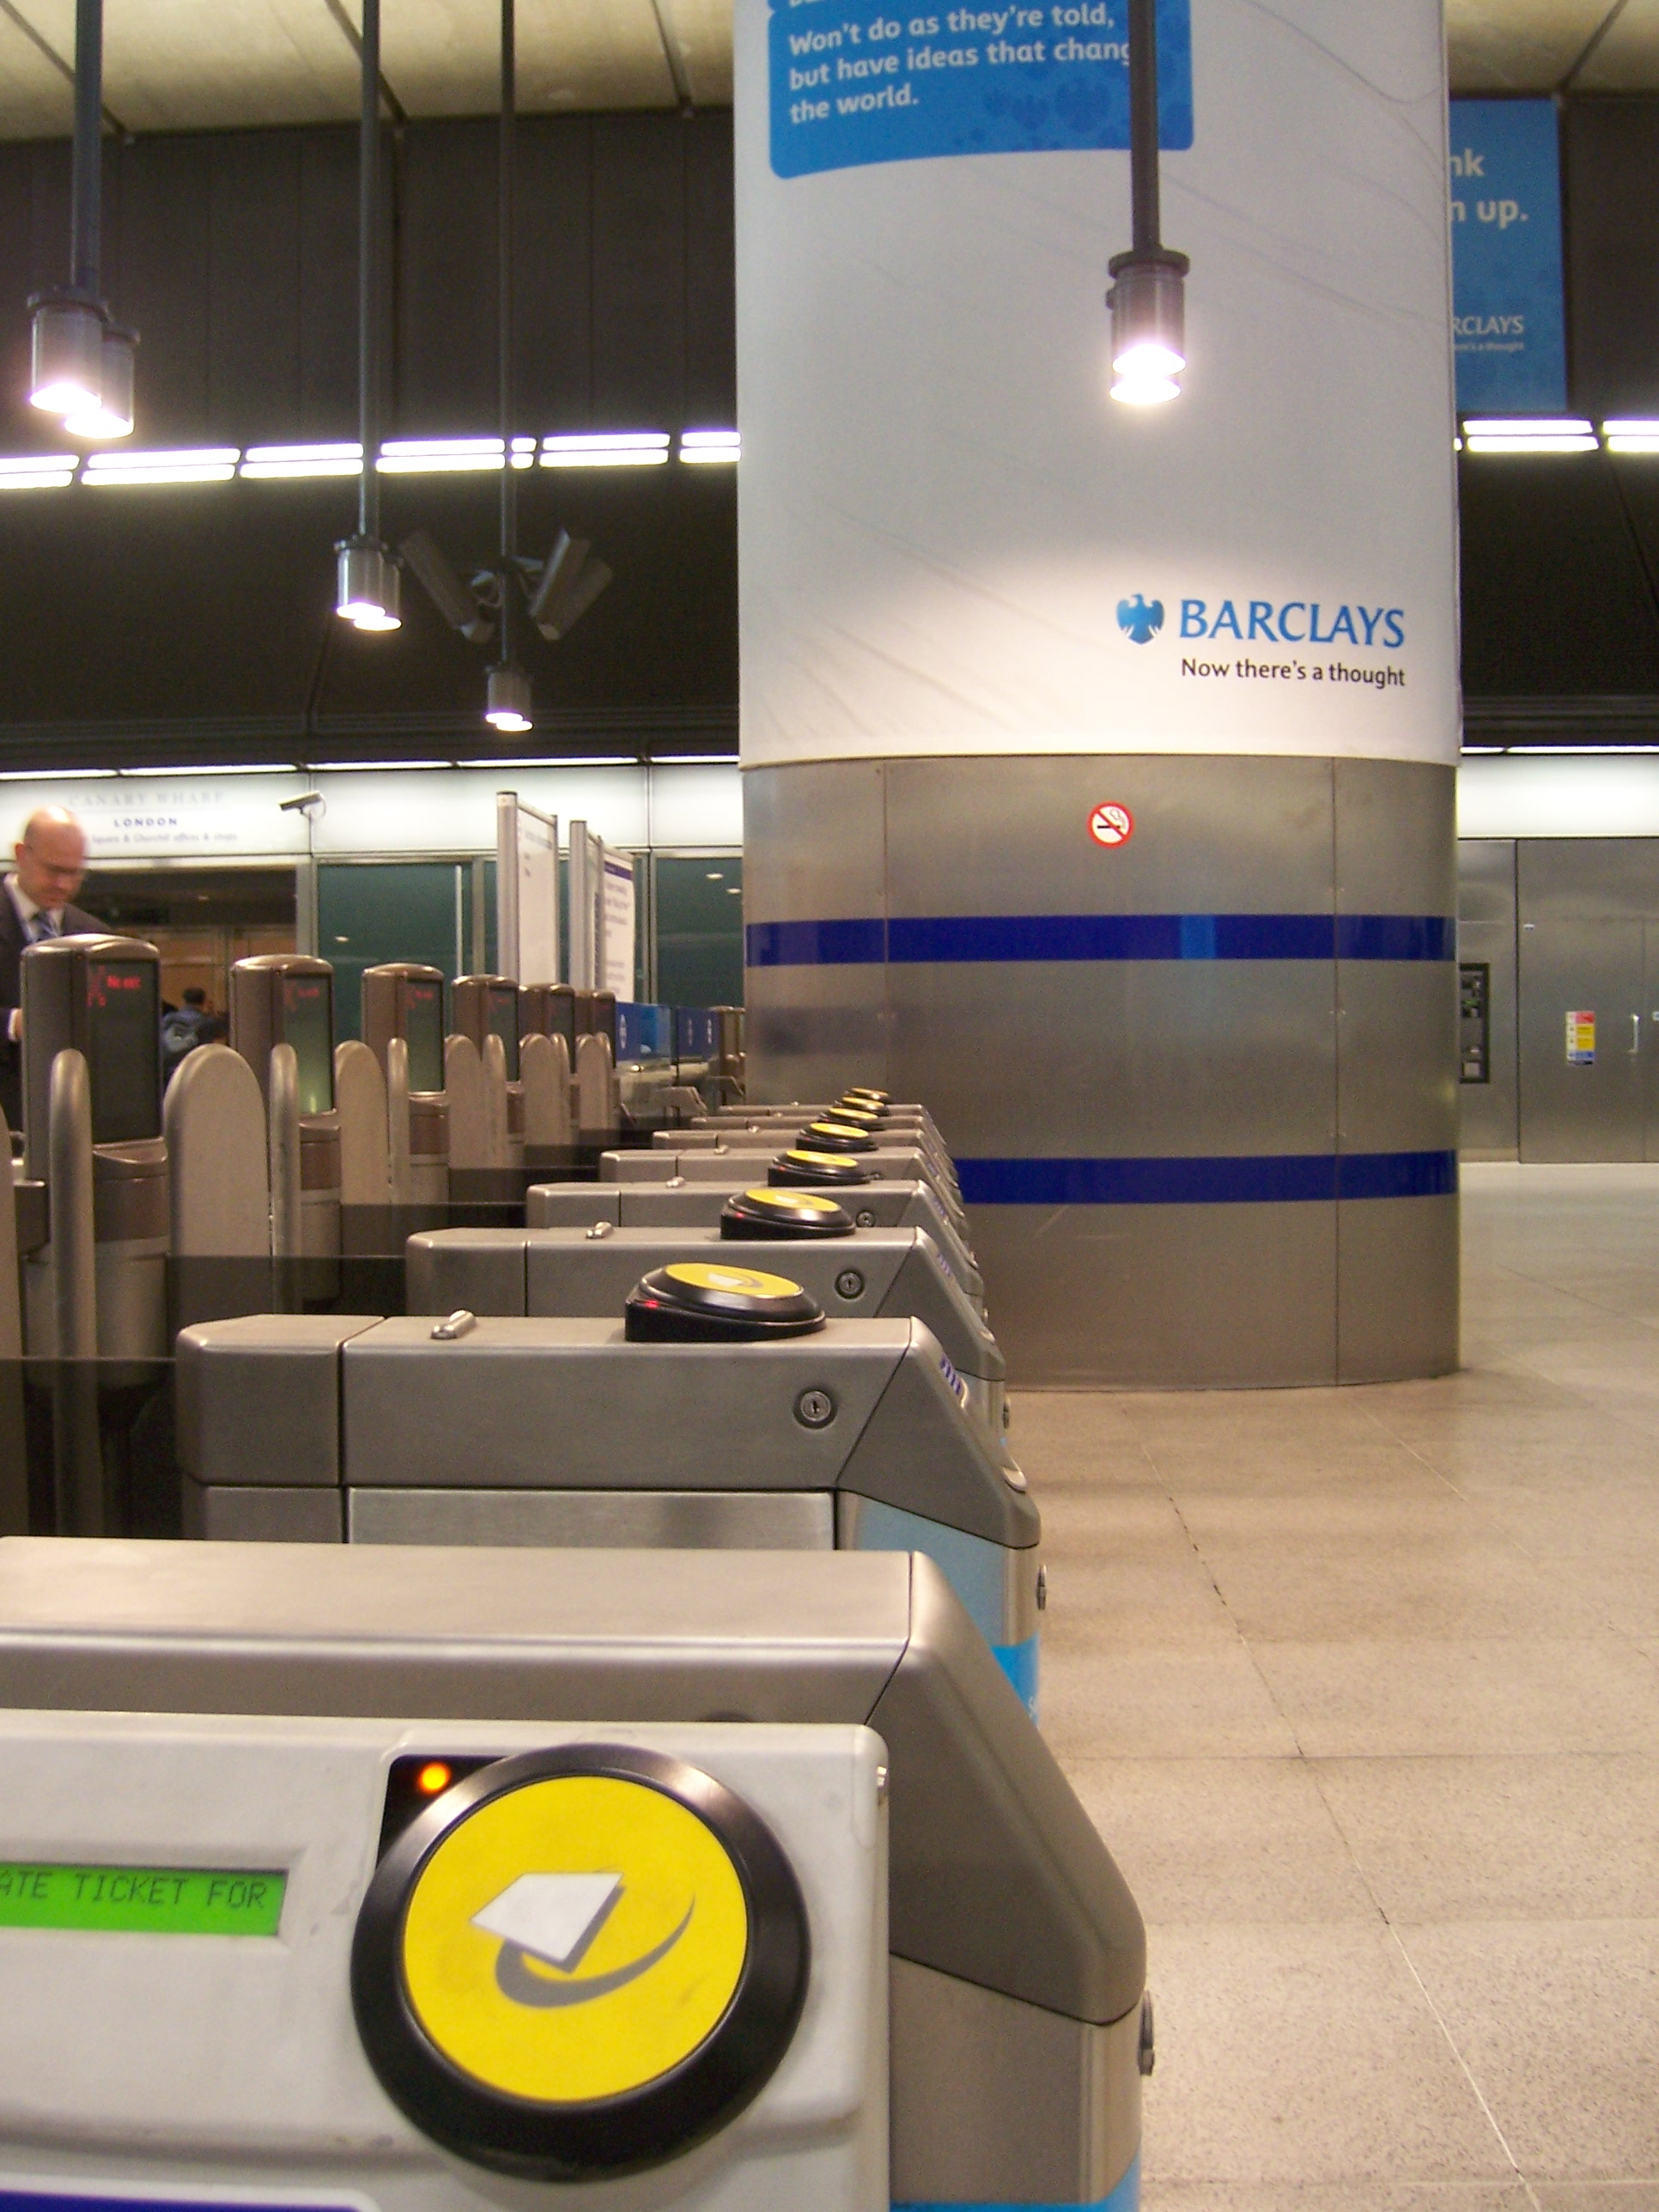 Canary wharf ticket barrier.jpg